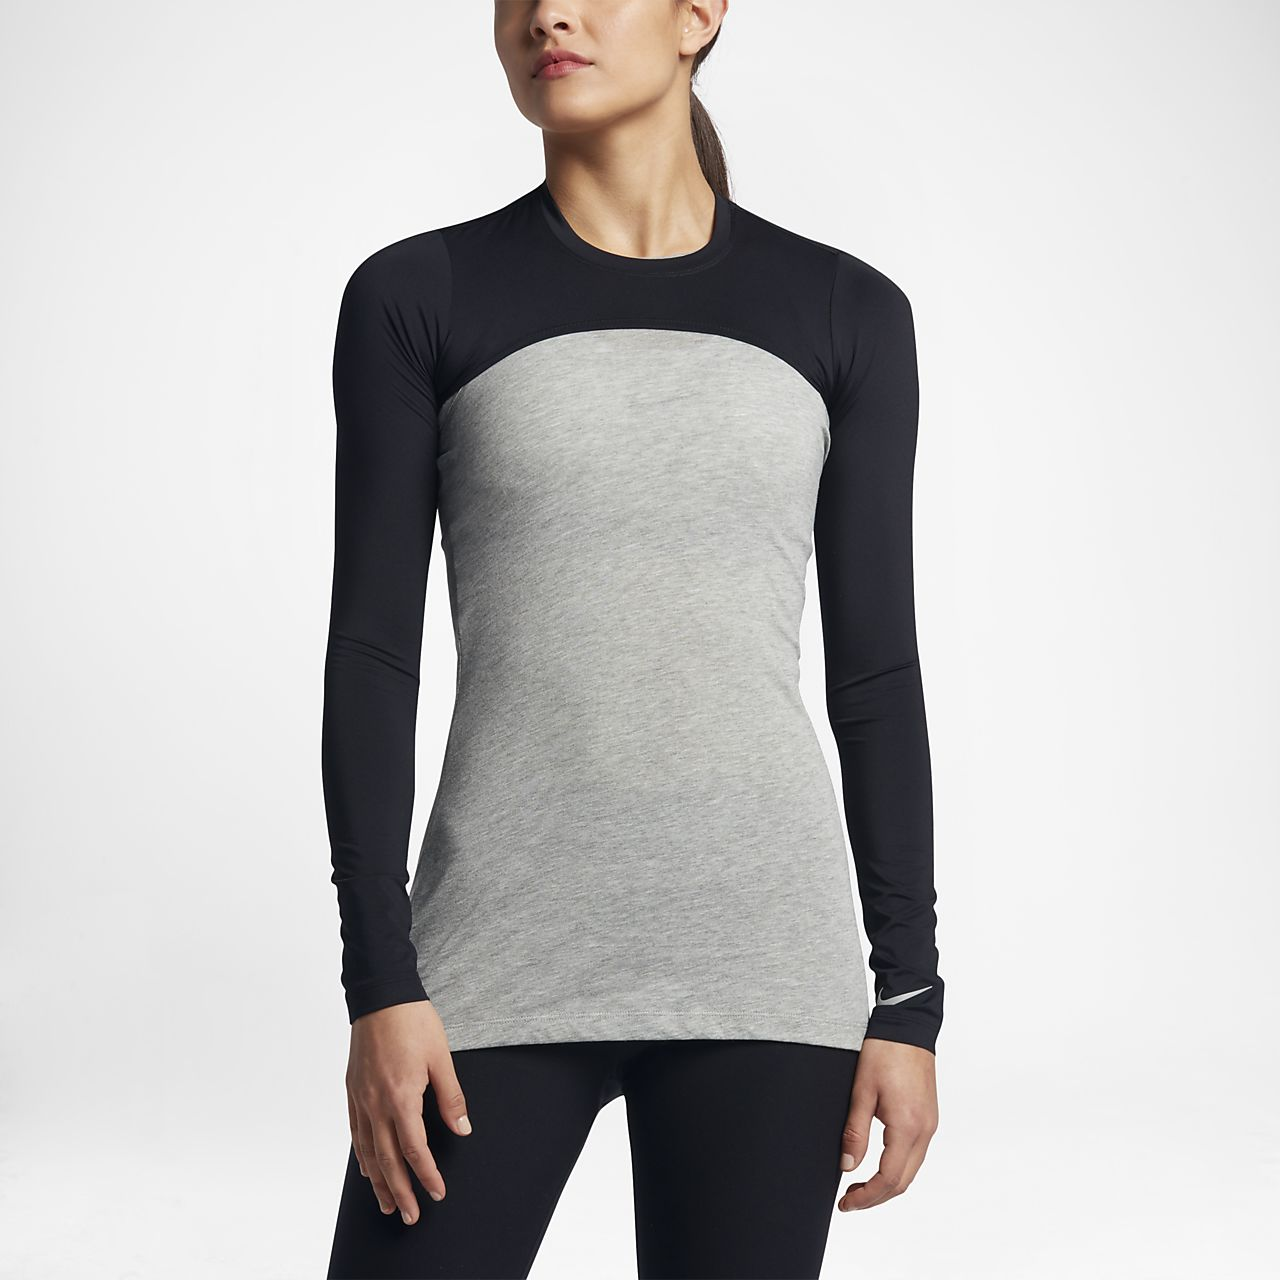 Nike Dry UV Cropped Baselayer Women's Golf Top